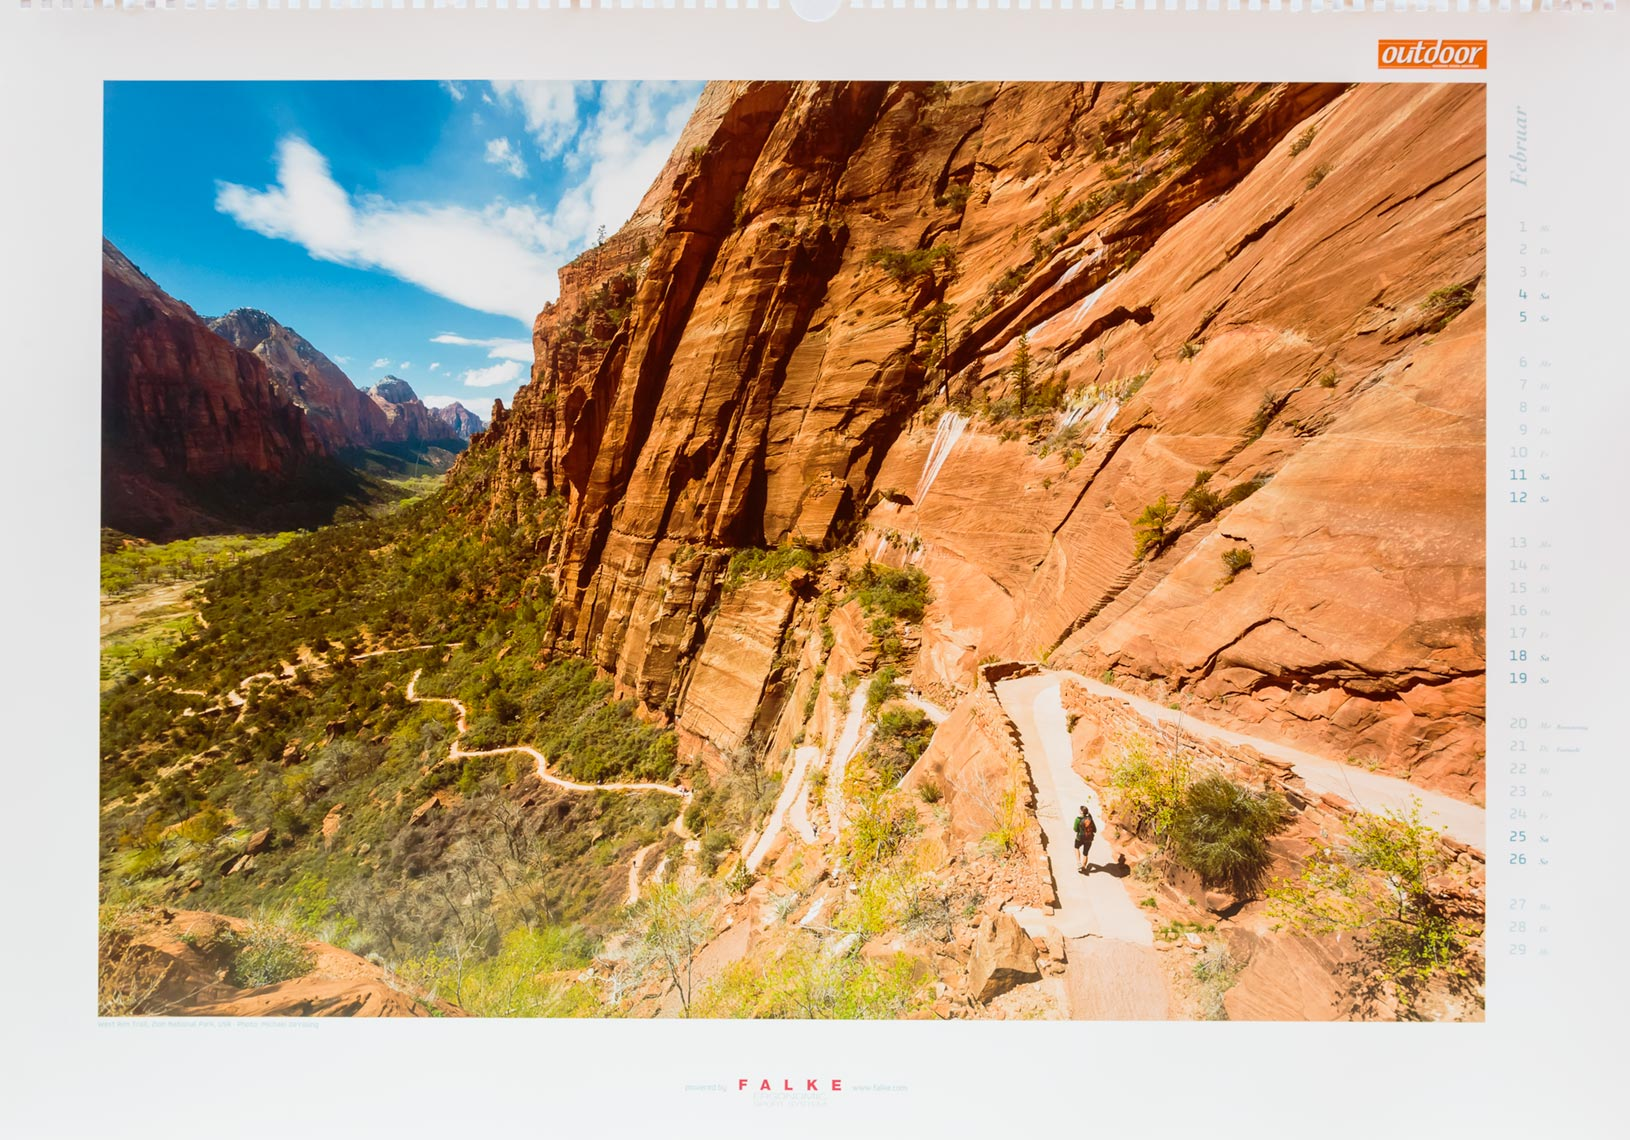 OUTDOOR-Magazin-Calendar-Zion-Observation-Point-Trail